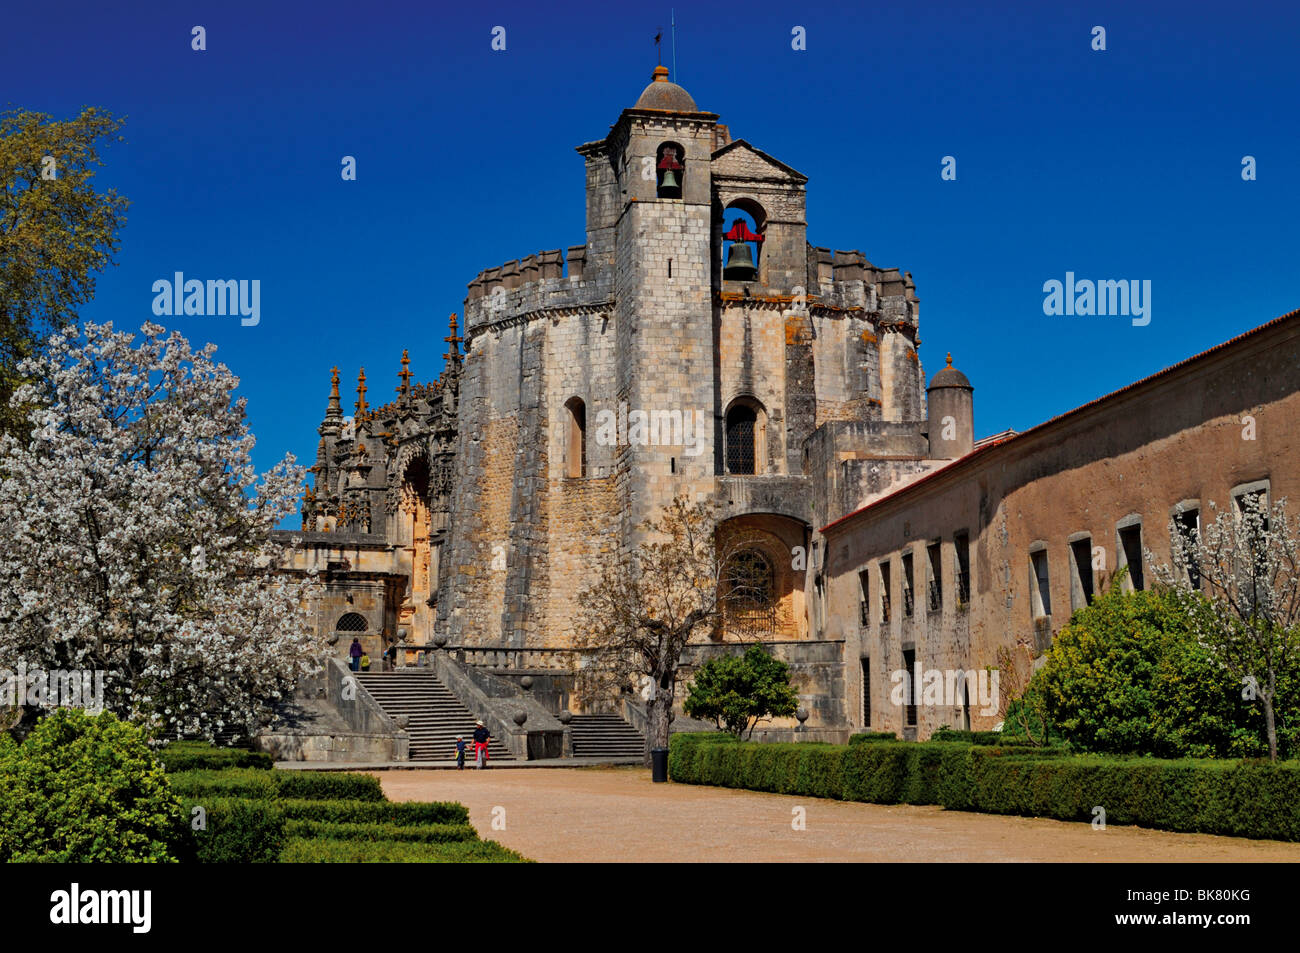 Portugal, Tomar: Former Templar church and Convent of the Order of Christ - Stock Image